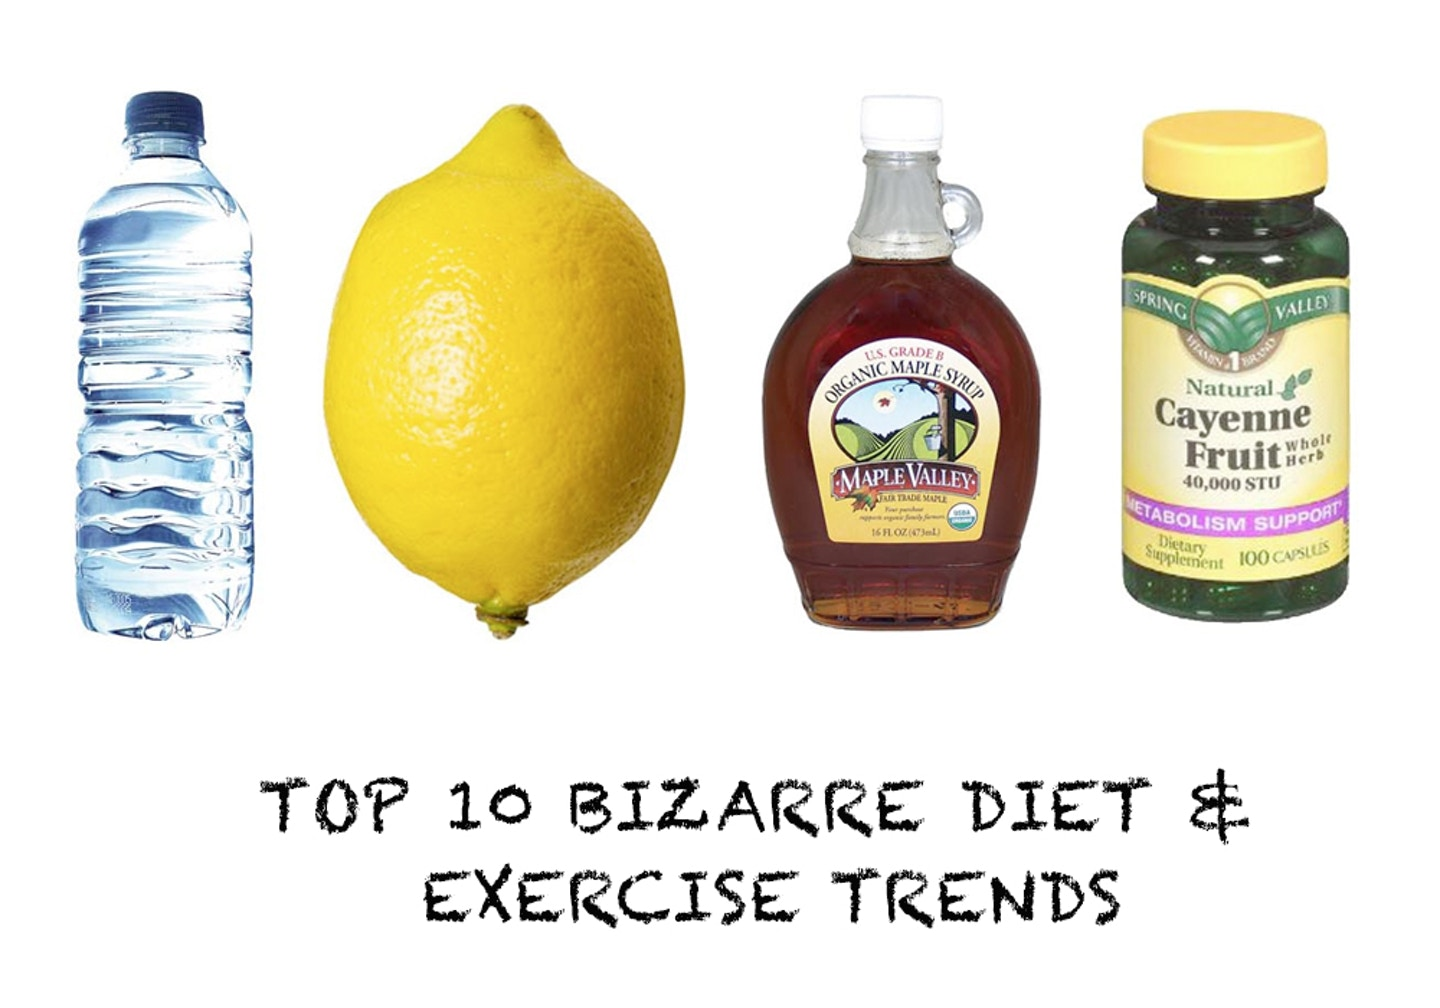 Top 10 bizarre diet and exercise trends